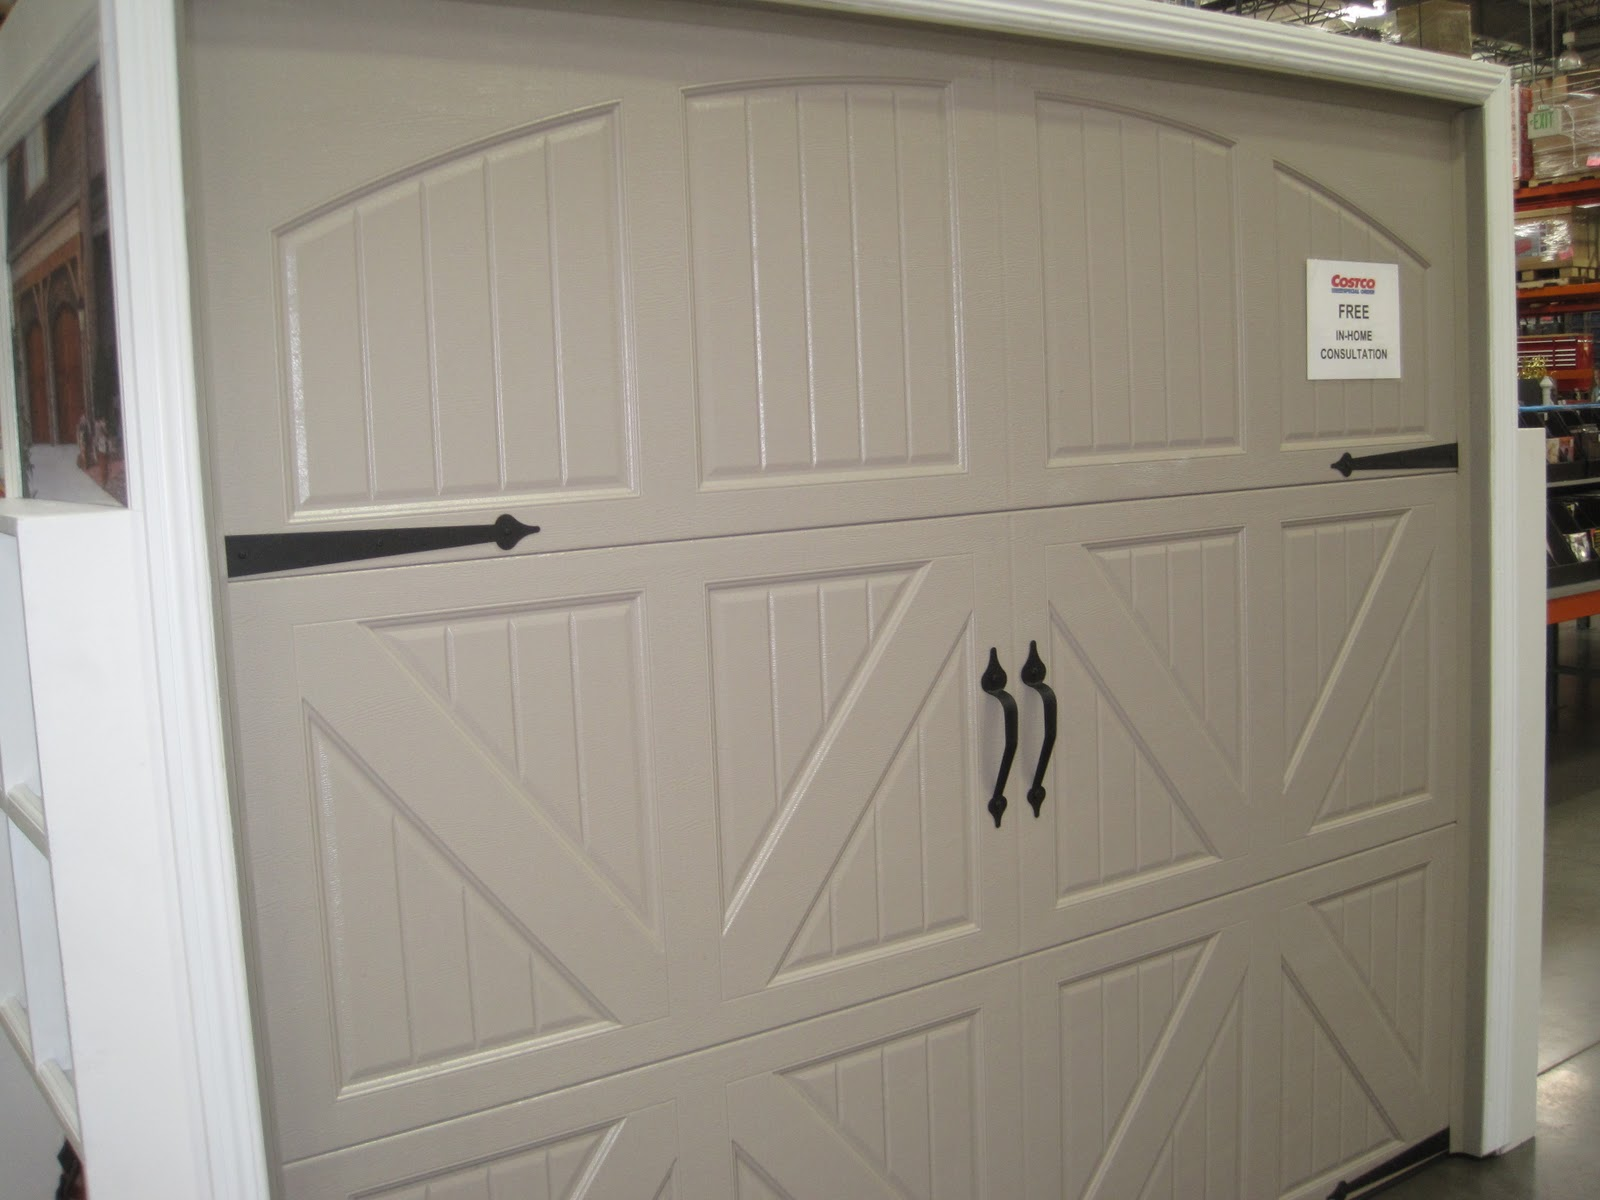 1200 #5F4938 Garage Doors Unlimited: Garage Door Road Show At Costco! pic Garage Doors At Costco 36911600